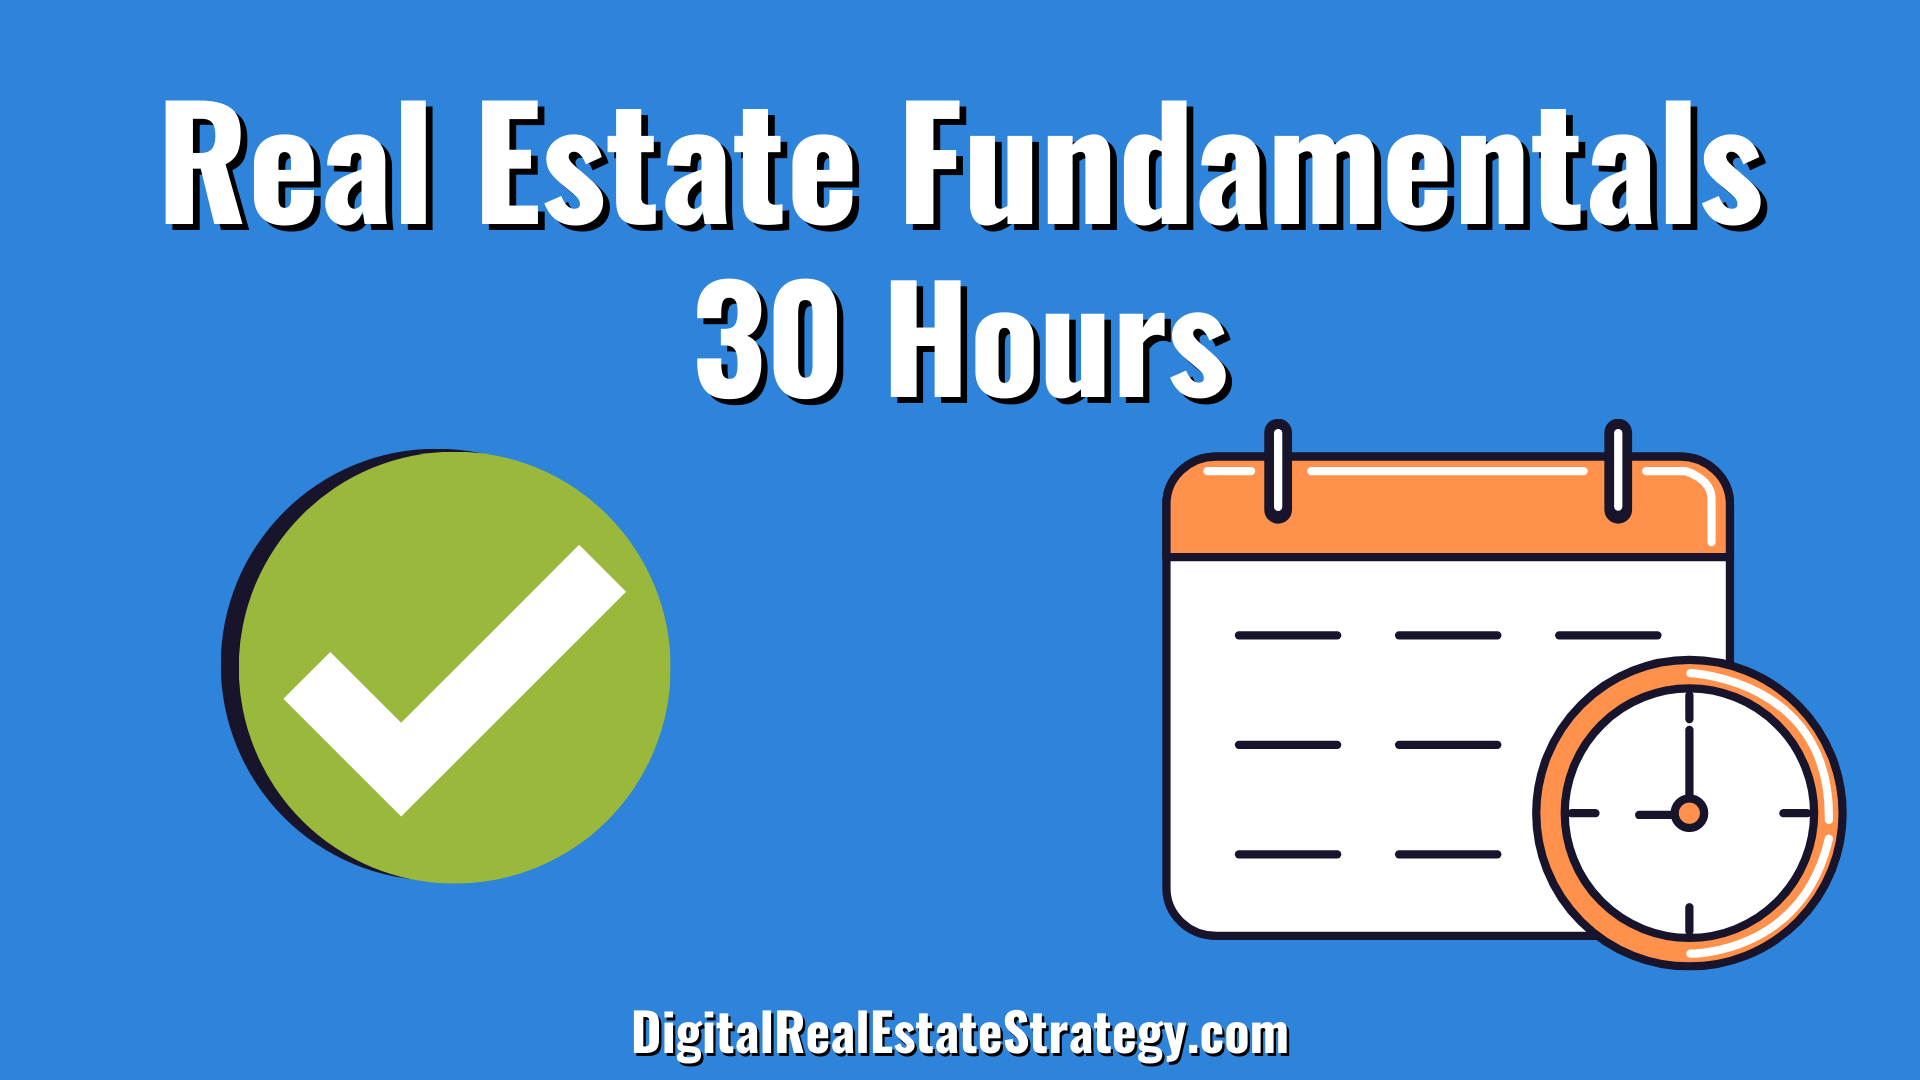 30 Hours Of Fundamentals - Real Estate License Requirements - Hours Required - Real Estate School - Jerome Lewis - Philadelphia - eXp Realty